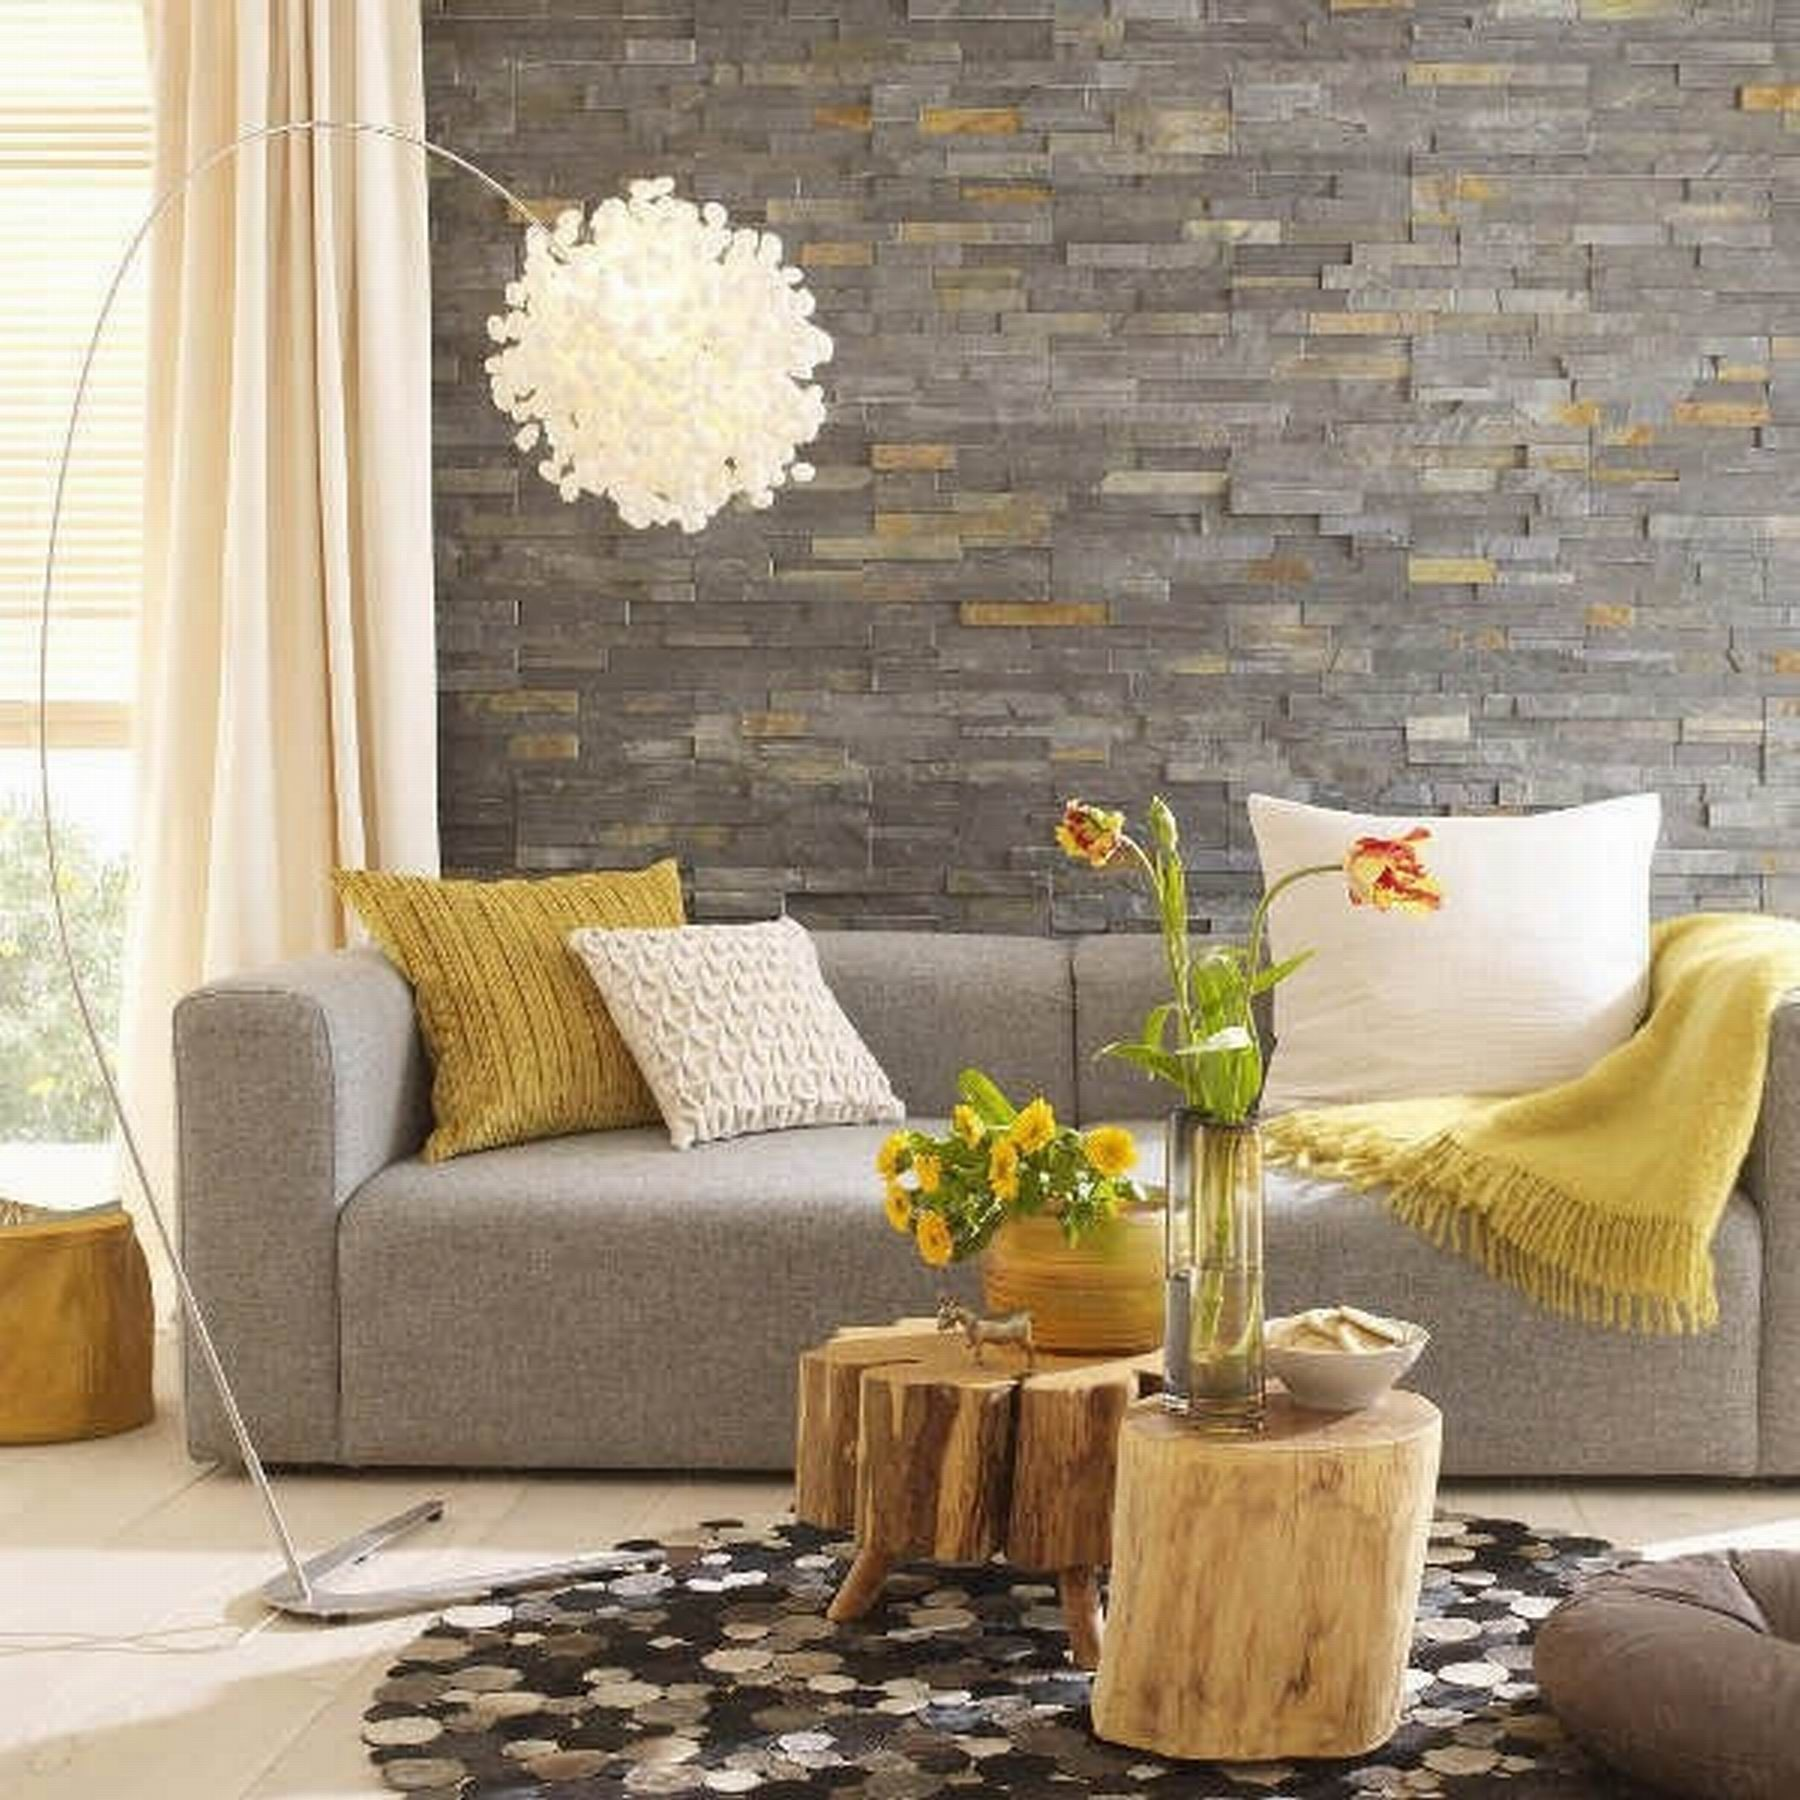 Small Eclectic Living Rooms: Living Room, Elegant Small Eclectic Living Room Design